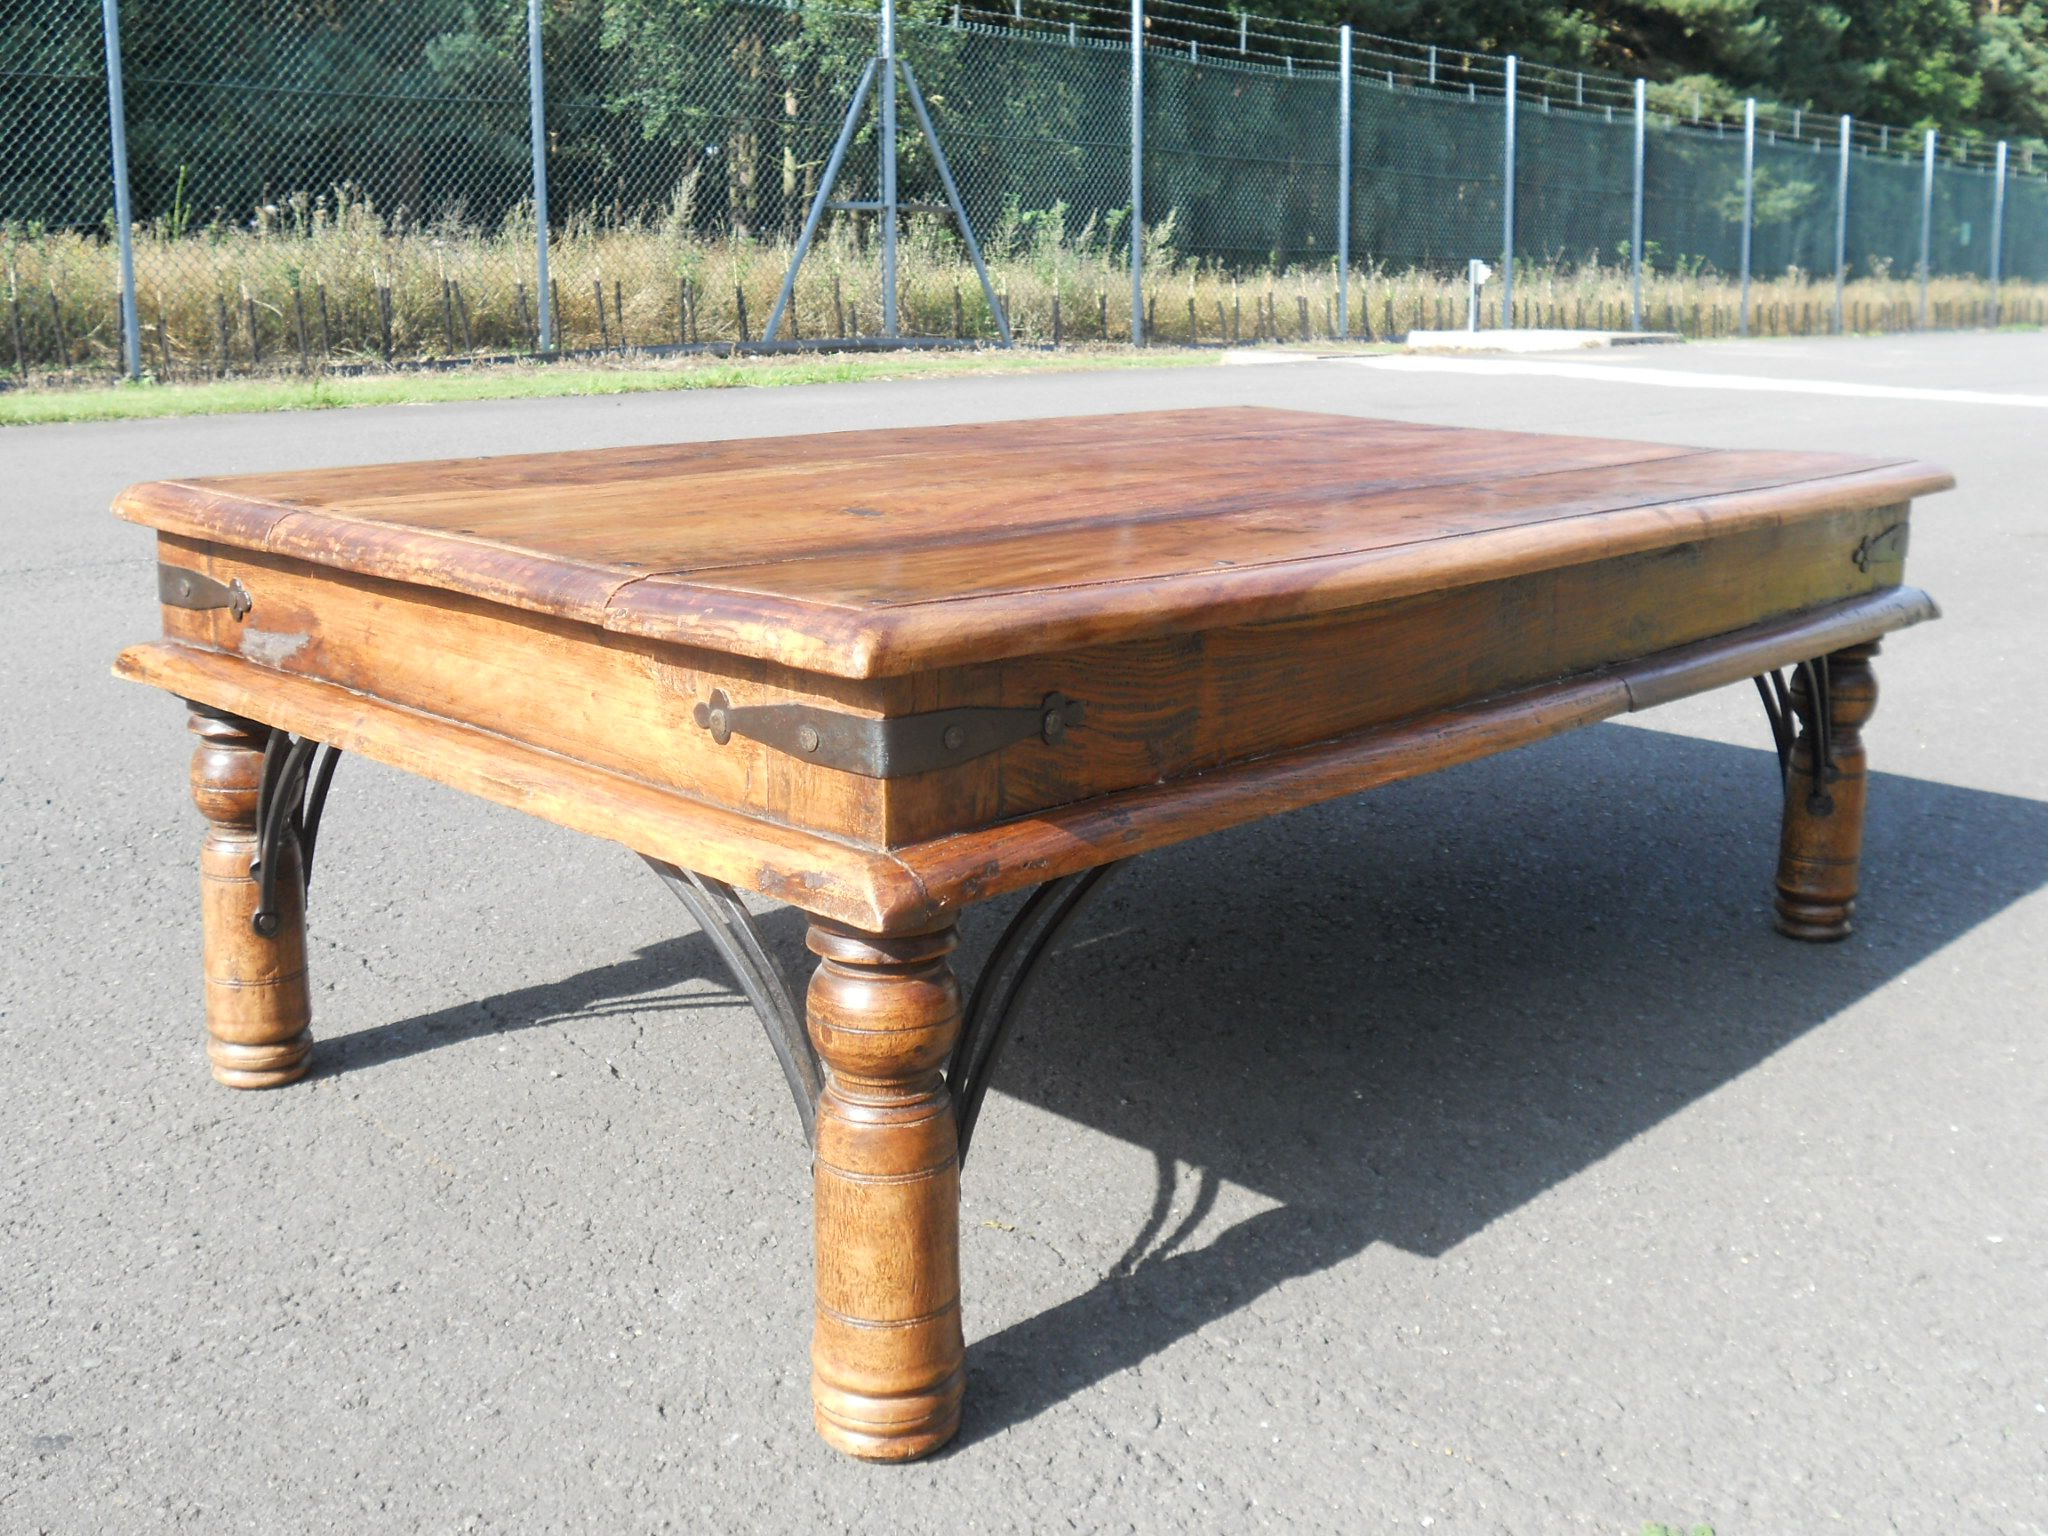 Sold Large Rustic Wooden Coffee Table